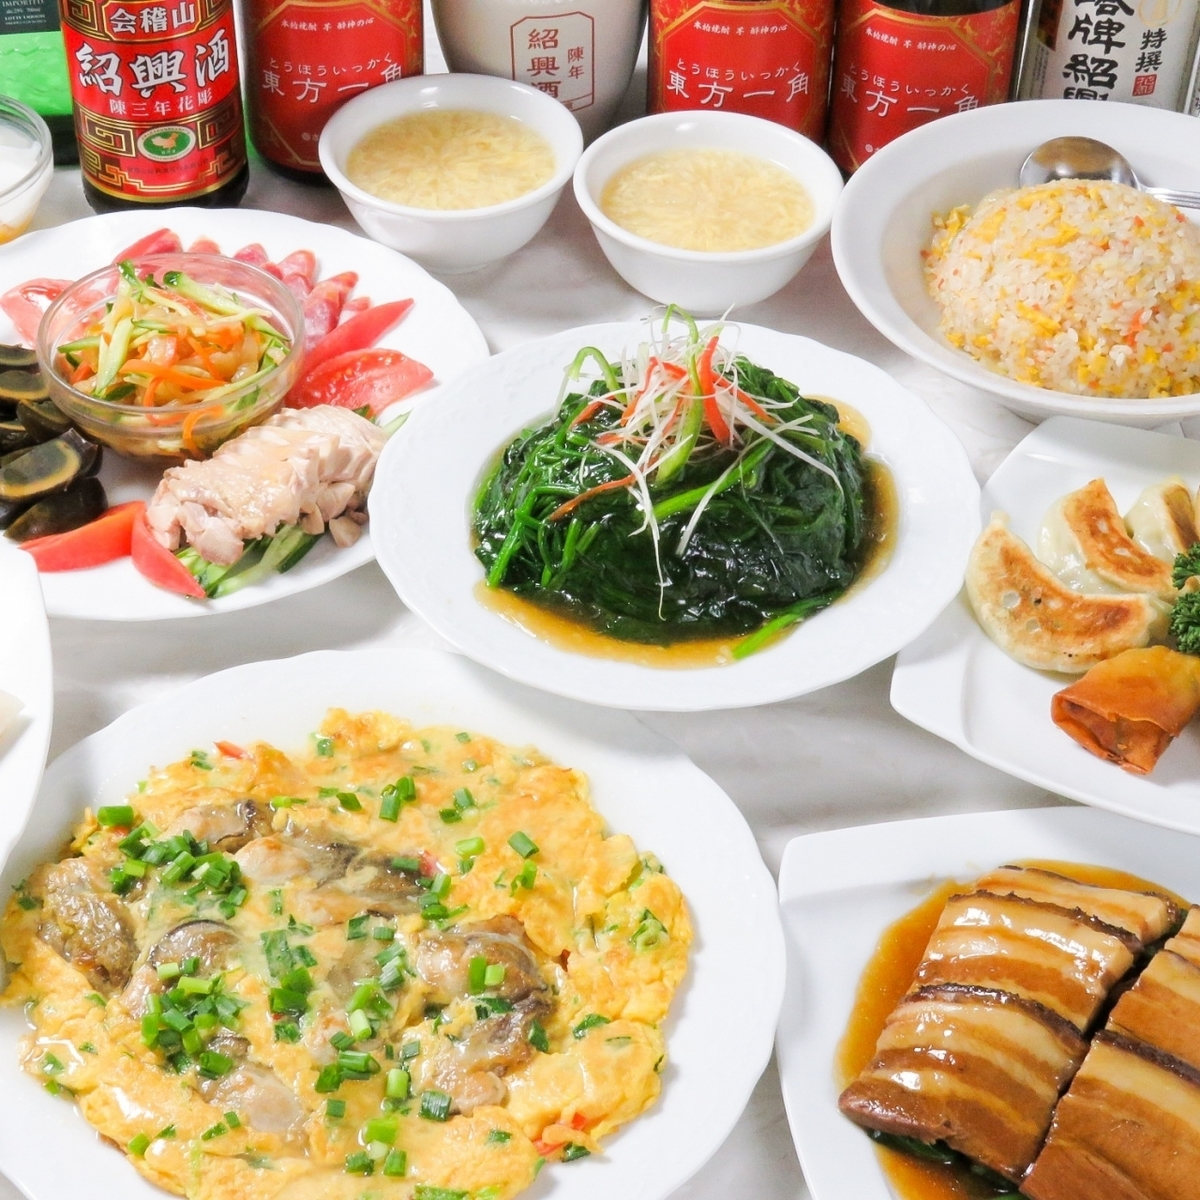 All-you-can-eat Chinese menu is 2200 yen!